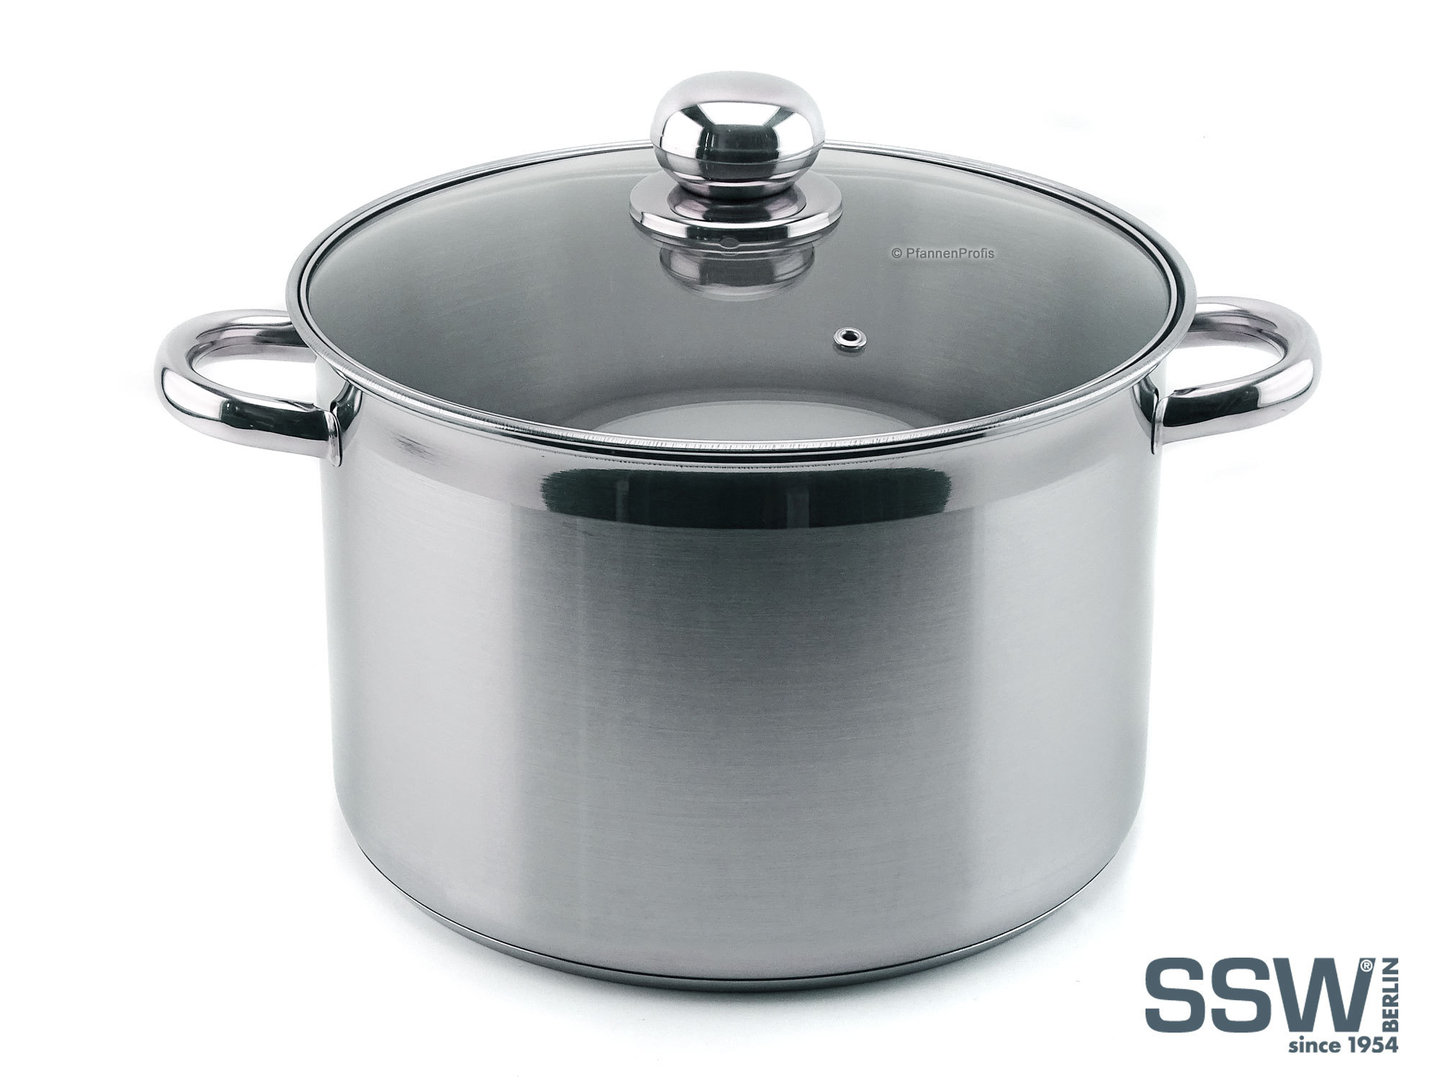 SSW stainless steel stockpot VITALO XXL 10 liters with glass lid 26 cm induction